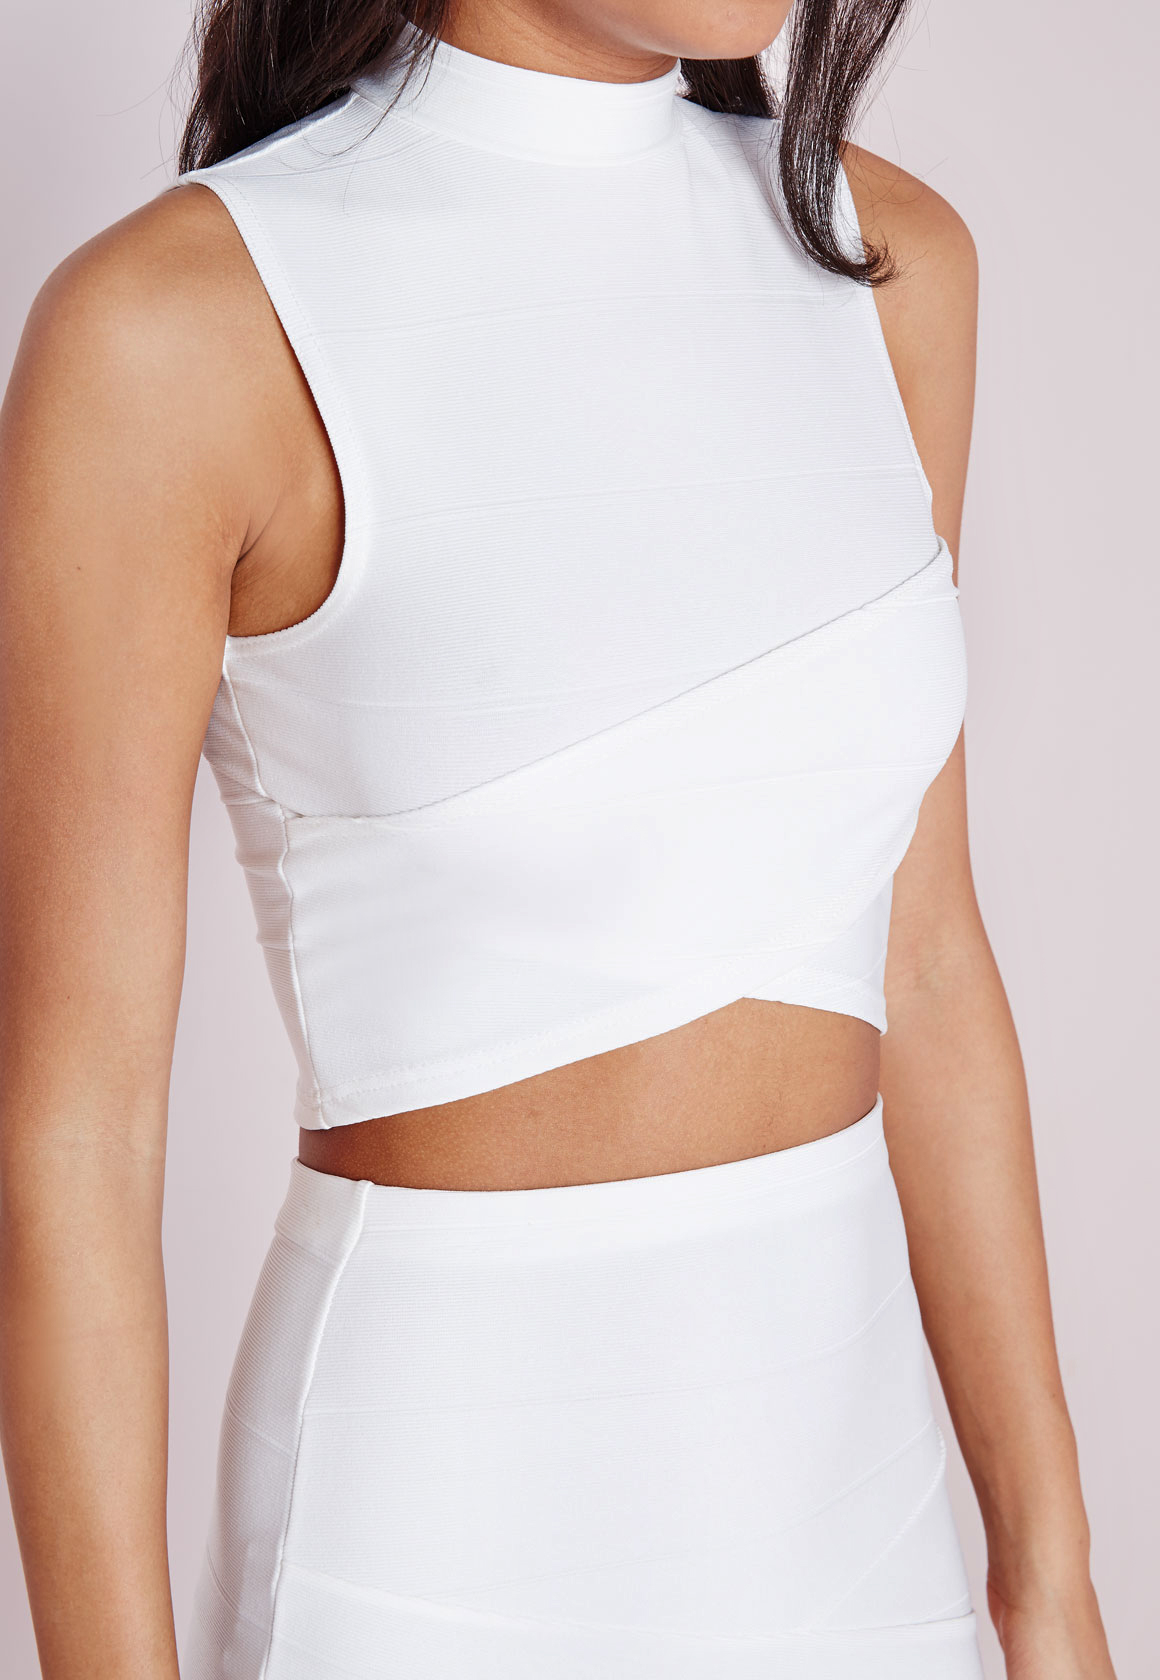 ebfab4de5209c Lyst - Missguided Bandage Wrap Over Sleeveless Crop Top White in White